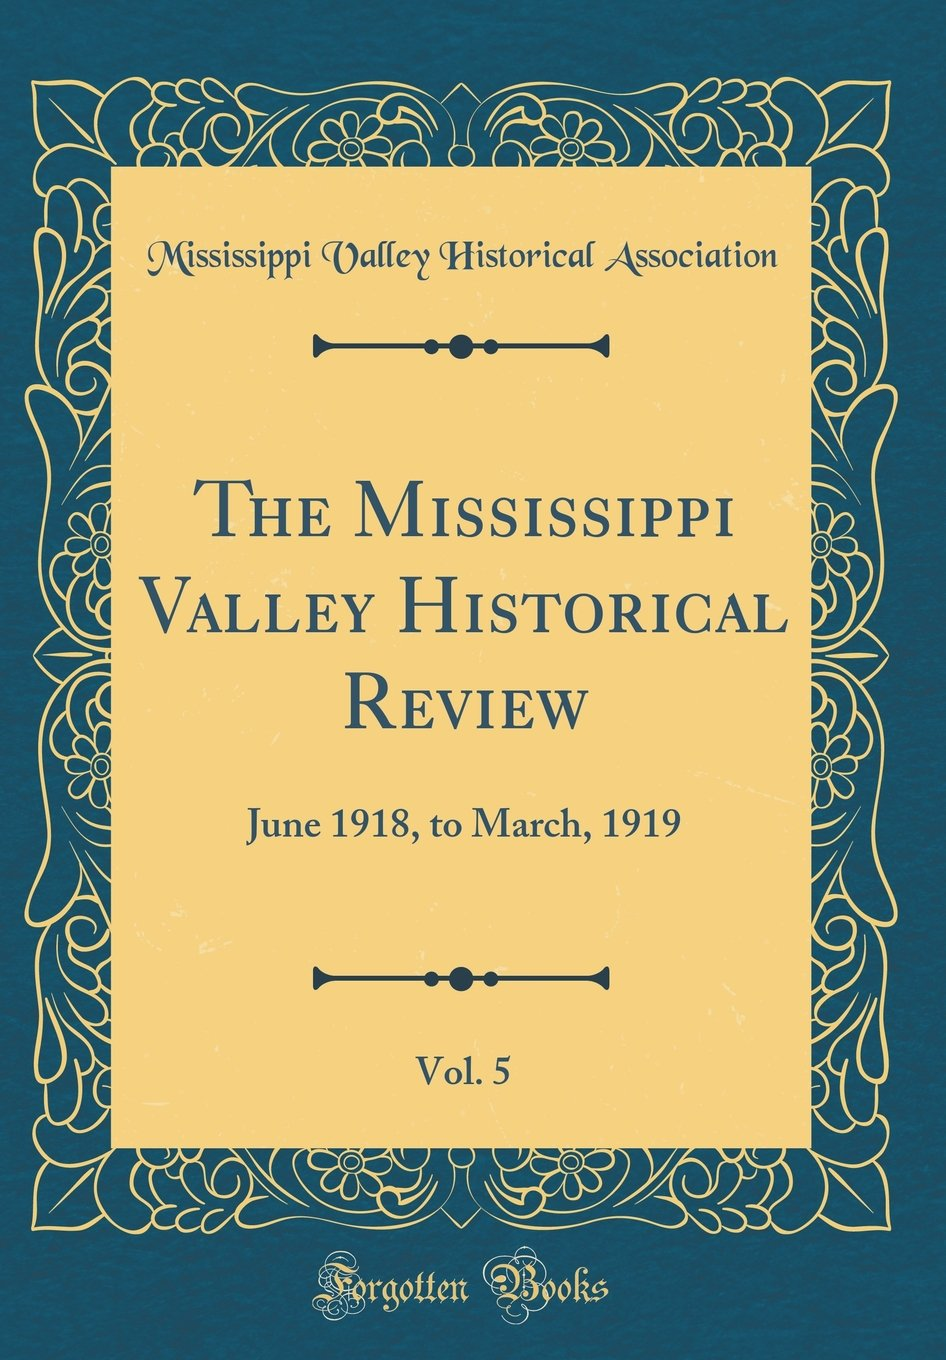 Download The Mississippi Valley Historical Review, Vol. 5: June 1918, to March, 1919 (Classic Reprint) PDF